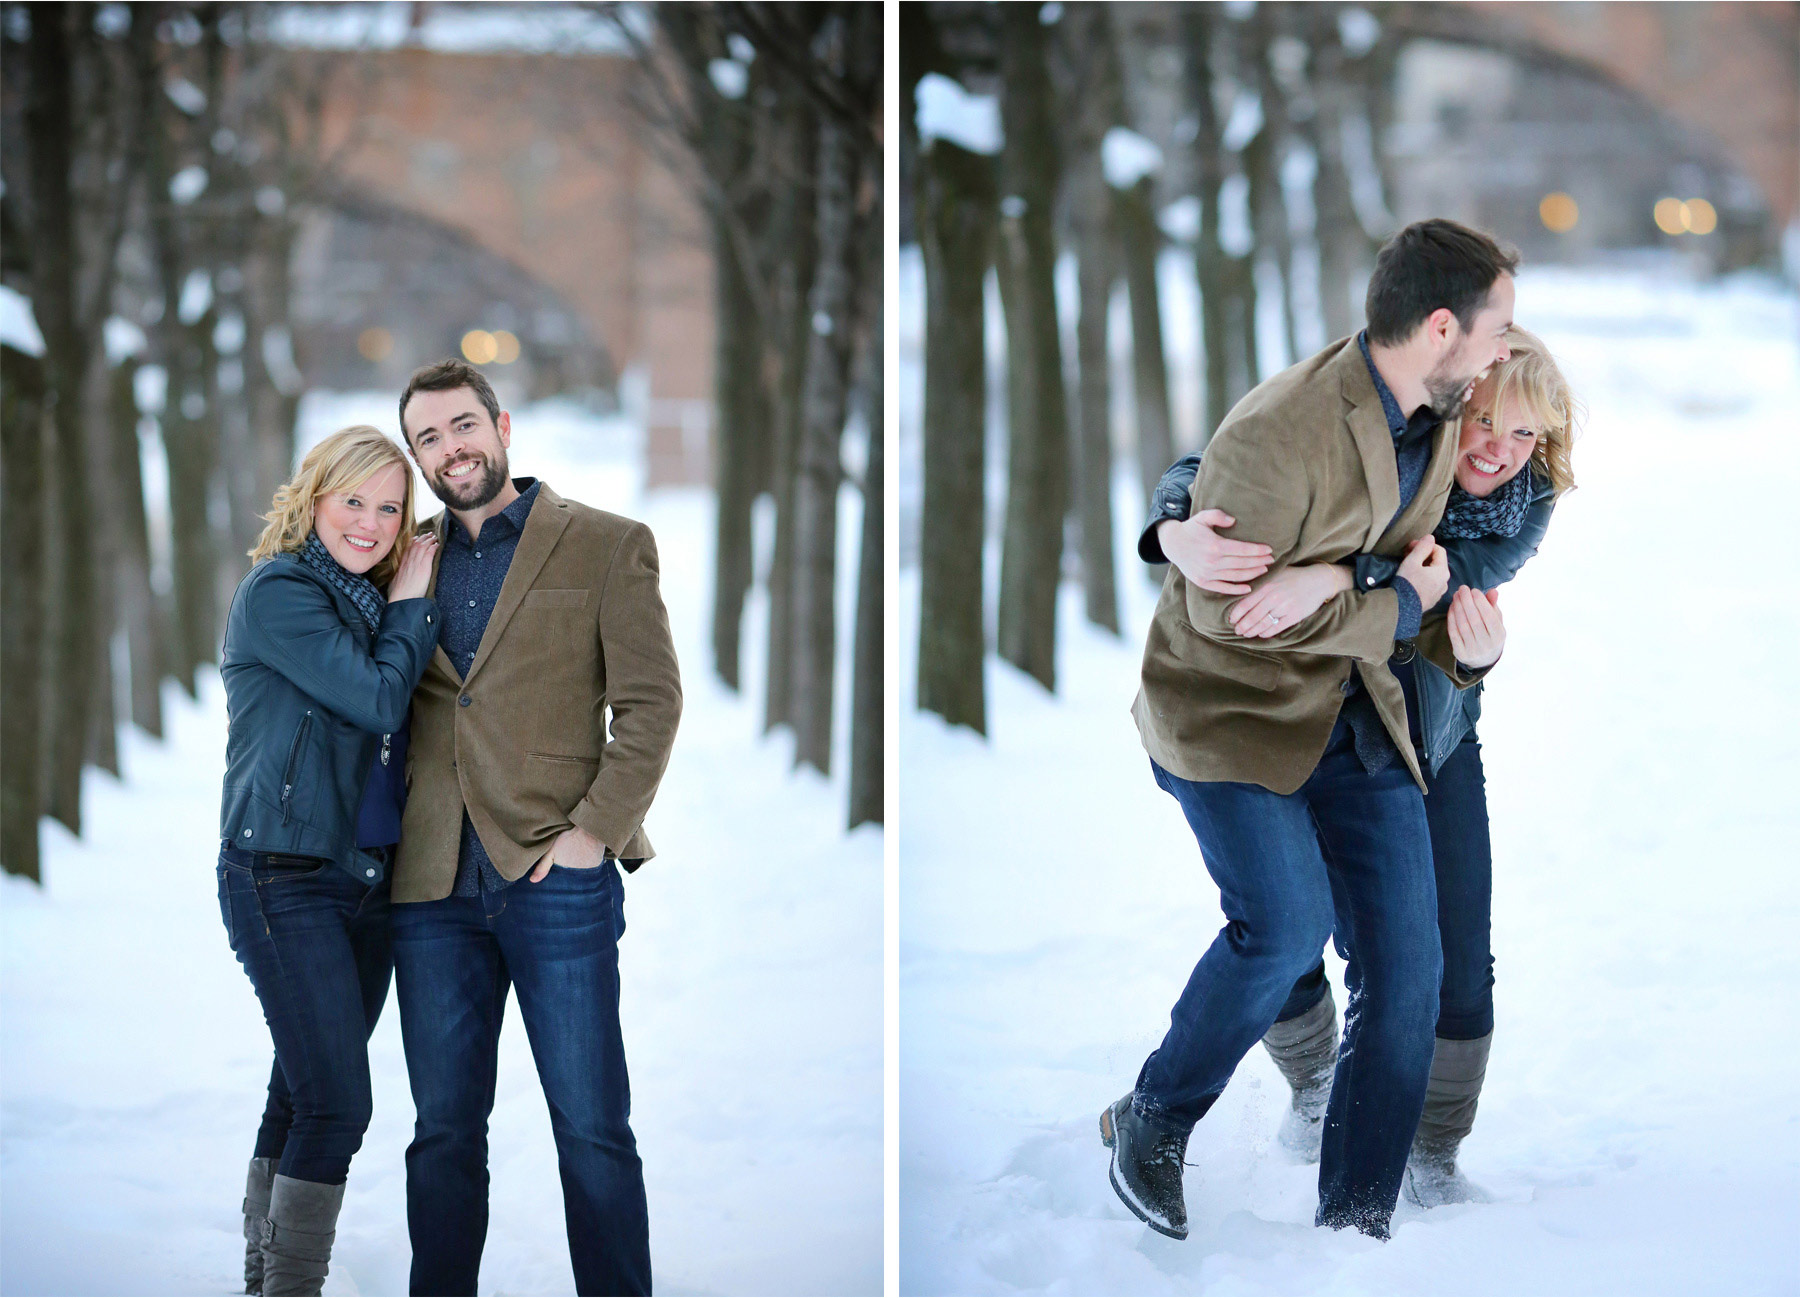 05-Edina-Minnesota-Wedding-Photographer-by-Andrew-Vick-Photography-Winter-Engagement-Bride-Groom-Snow-Embrace-Heather-and-Rob.jpg